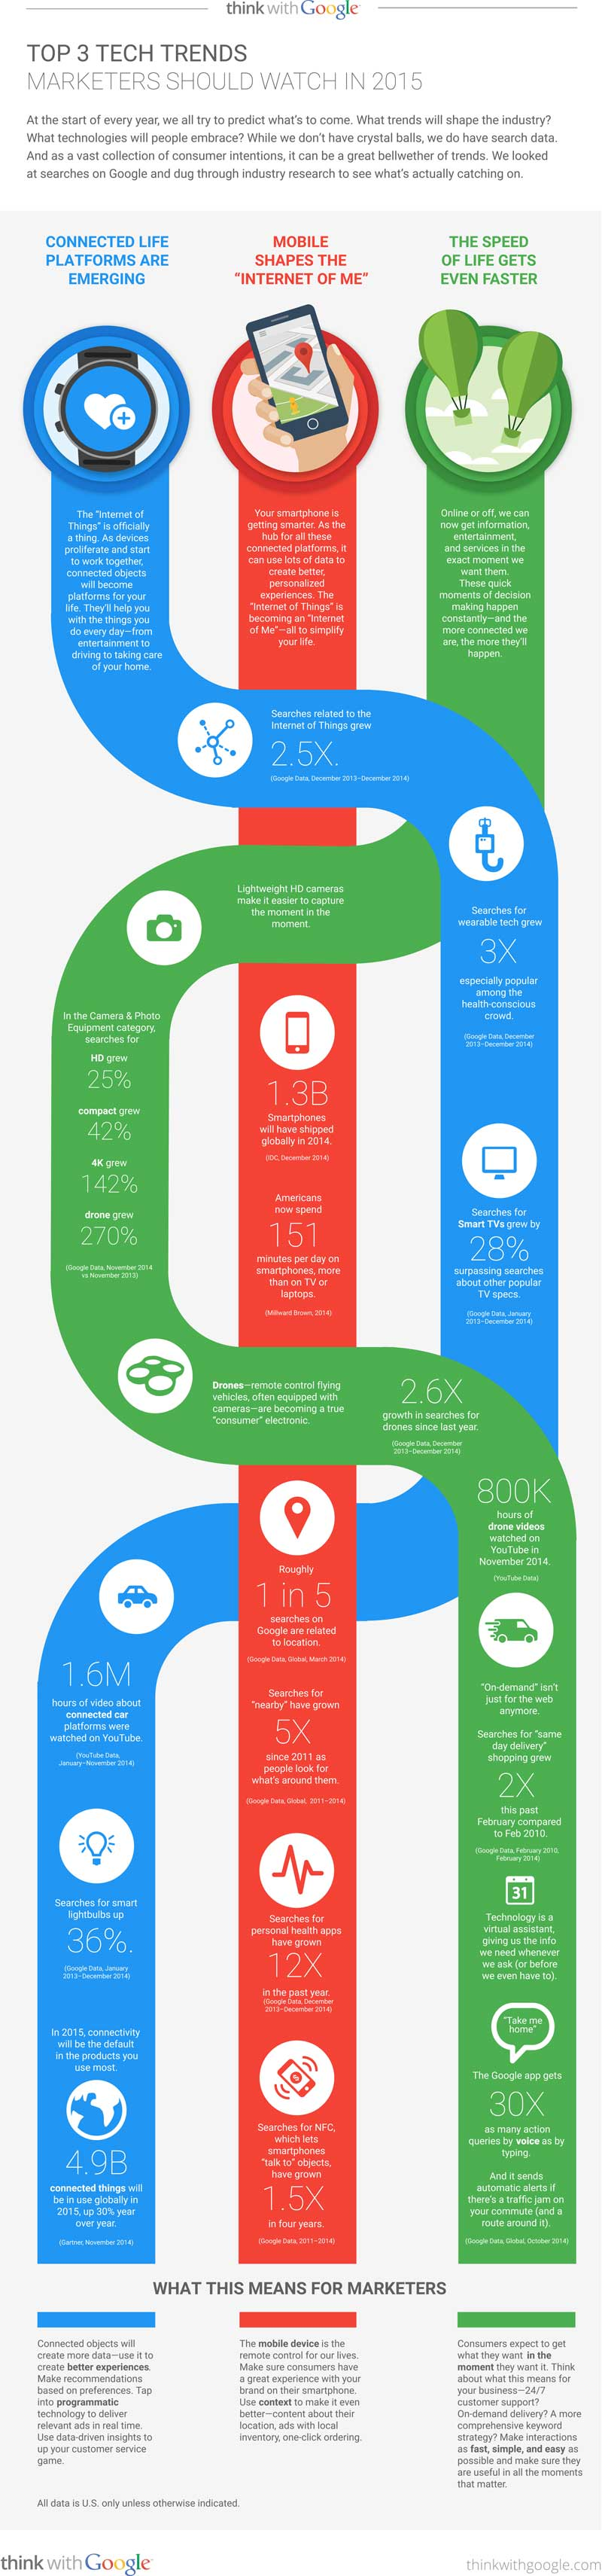 Top 3 Tech Trends for Marketers